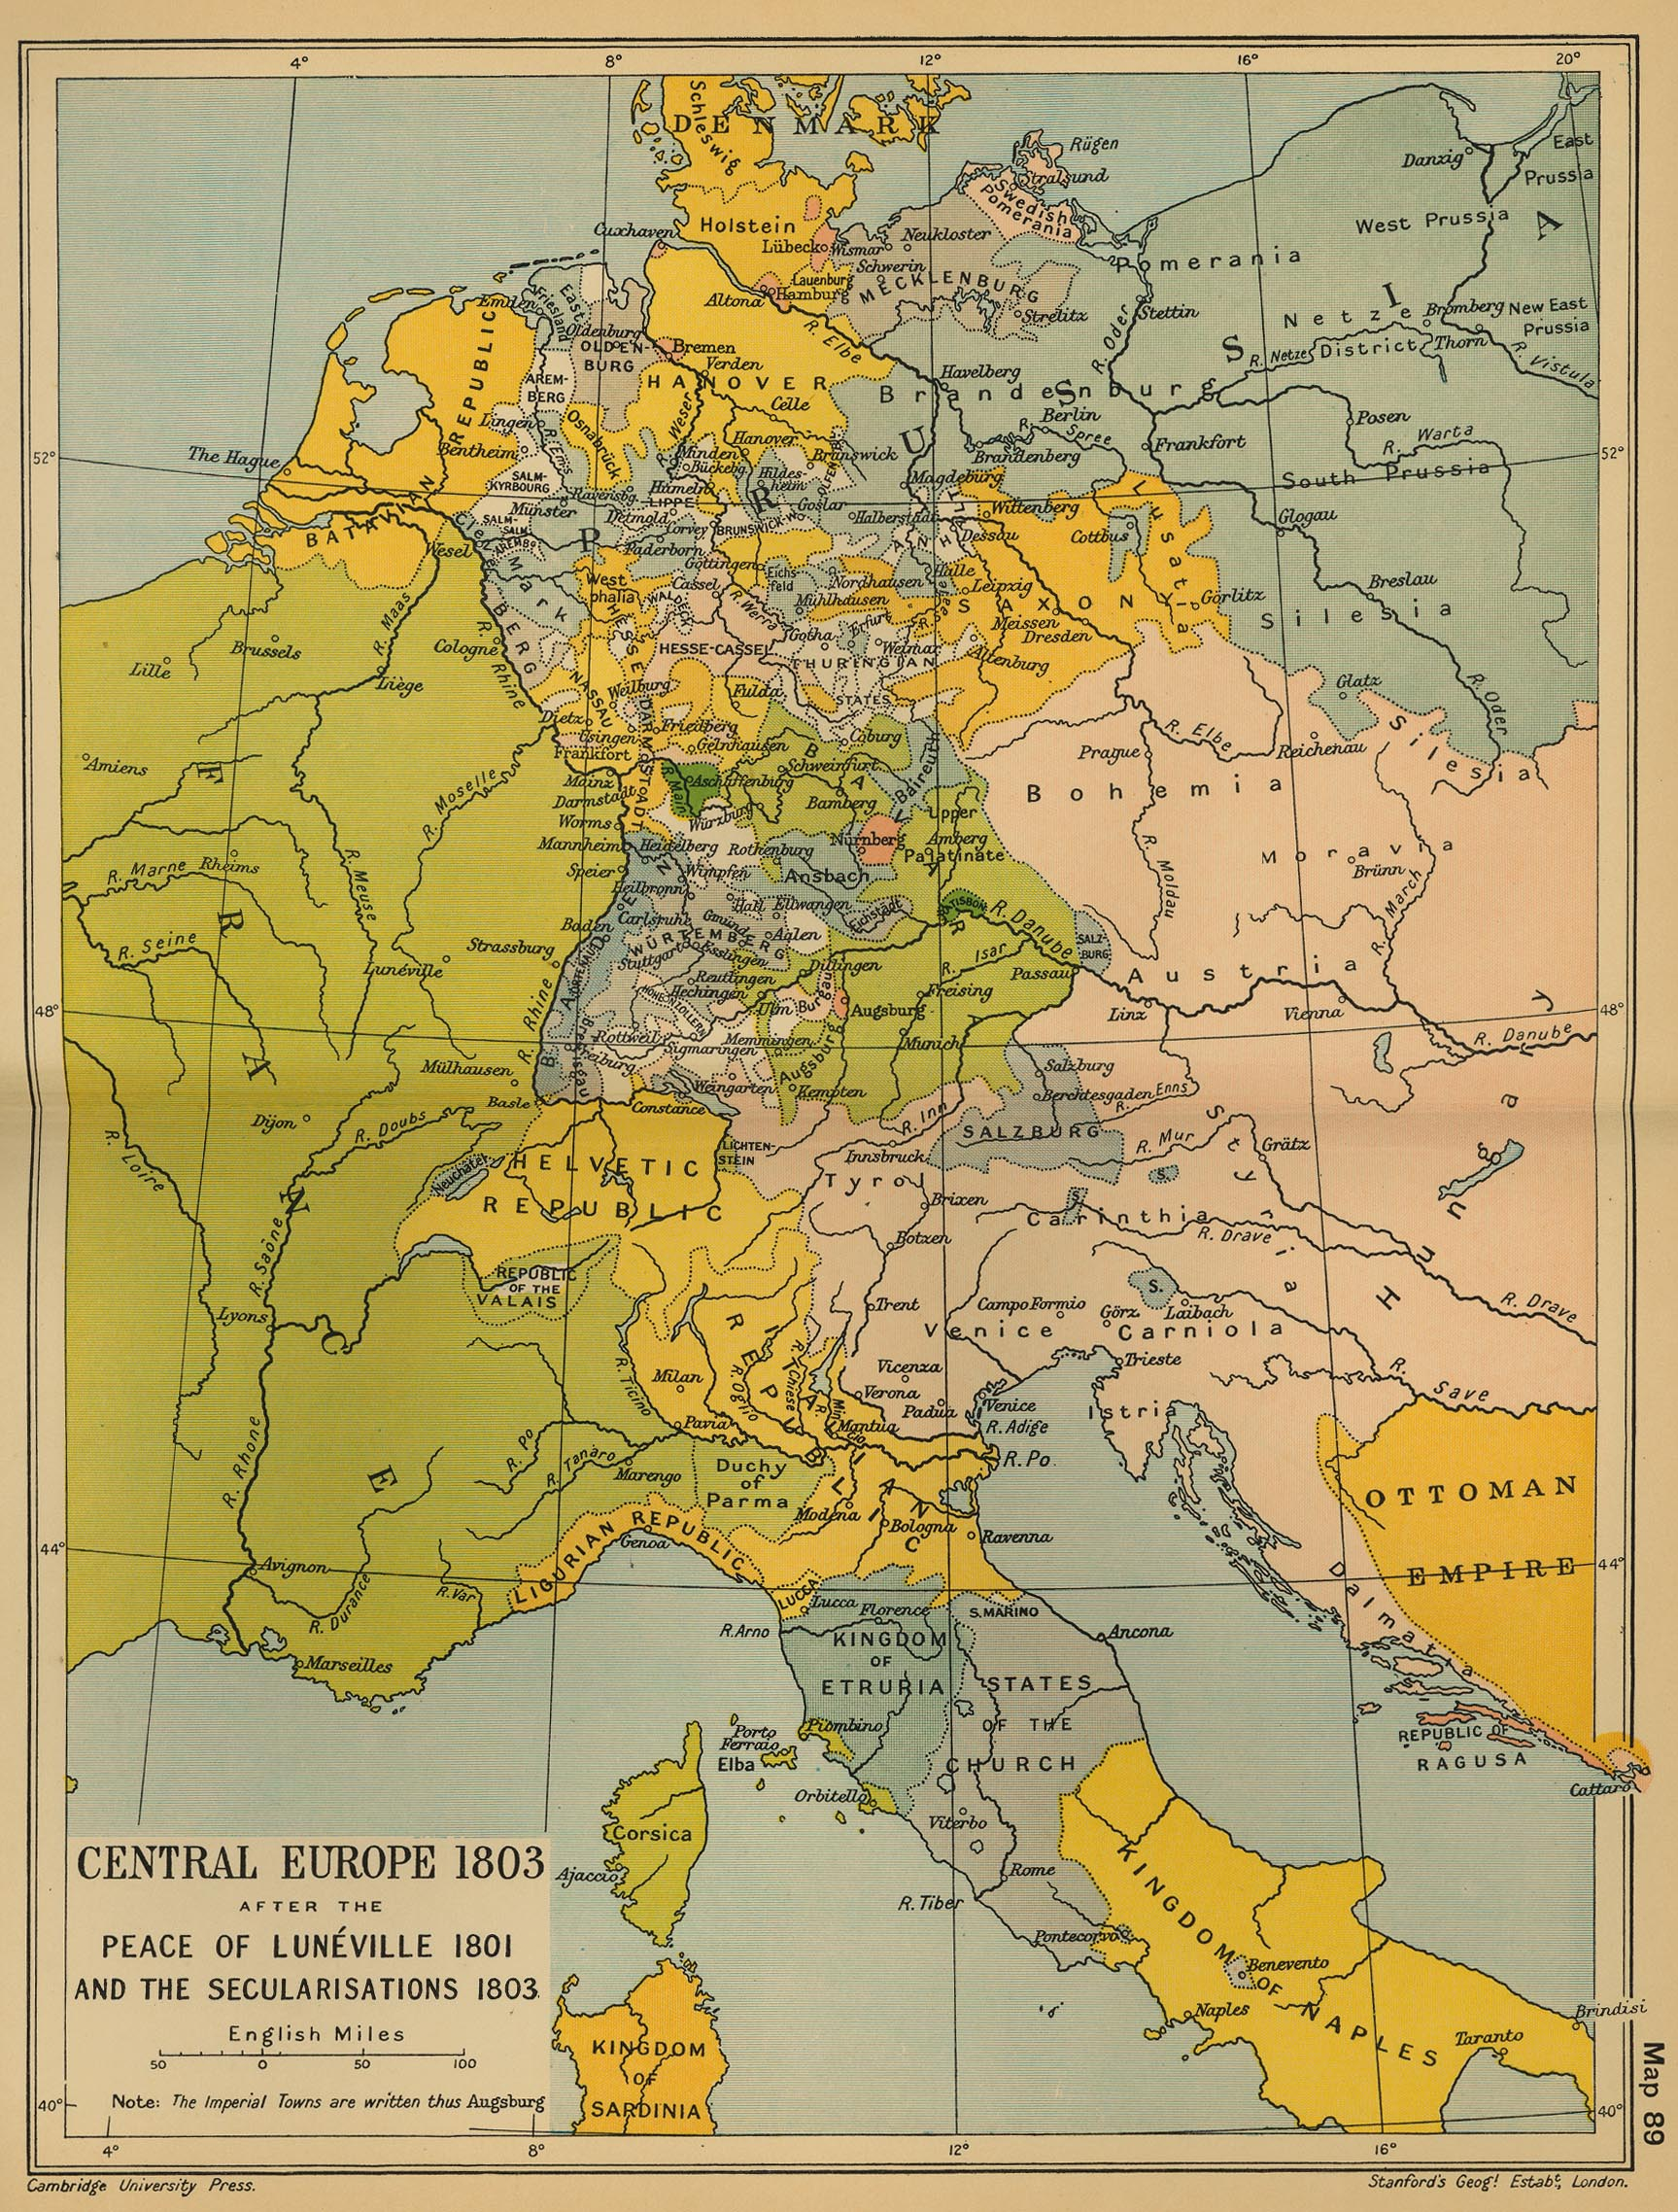 Map of Central Europe in 1803